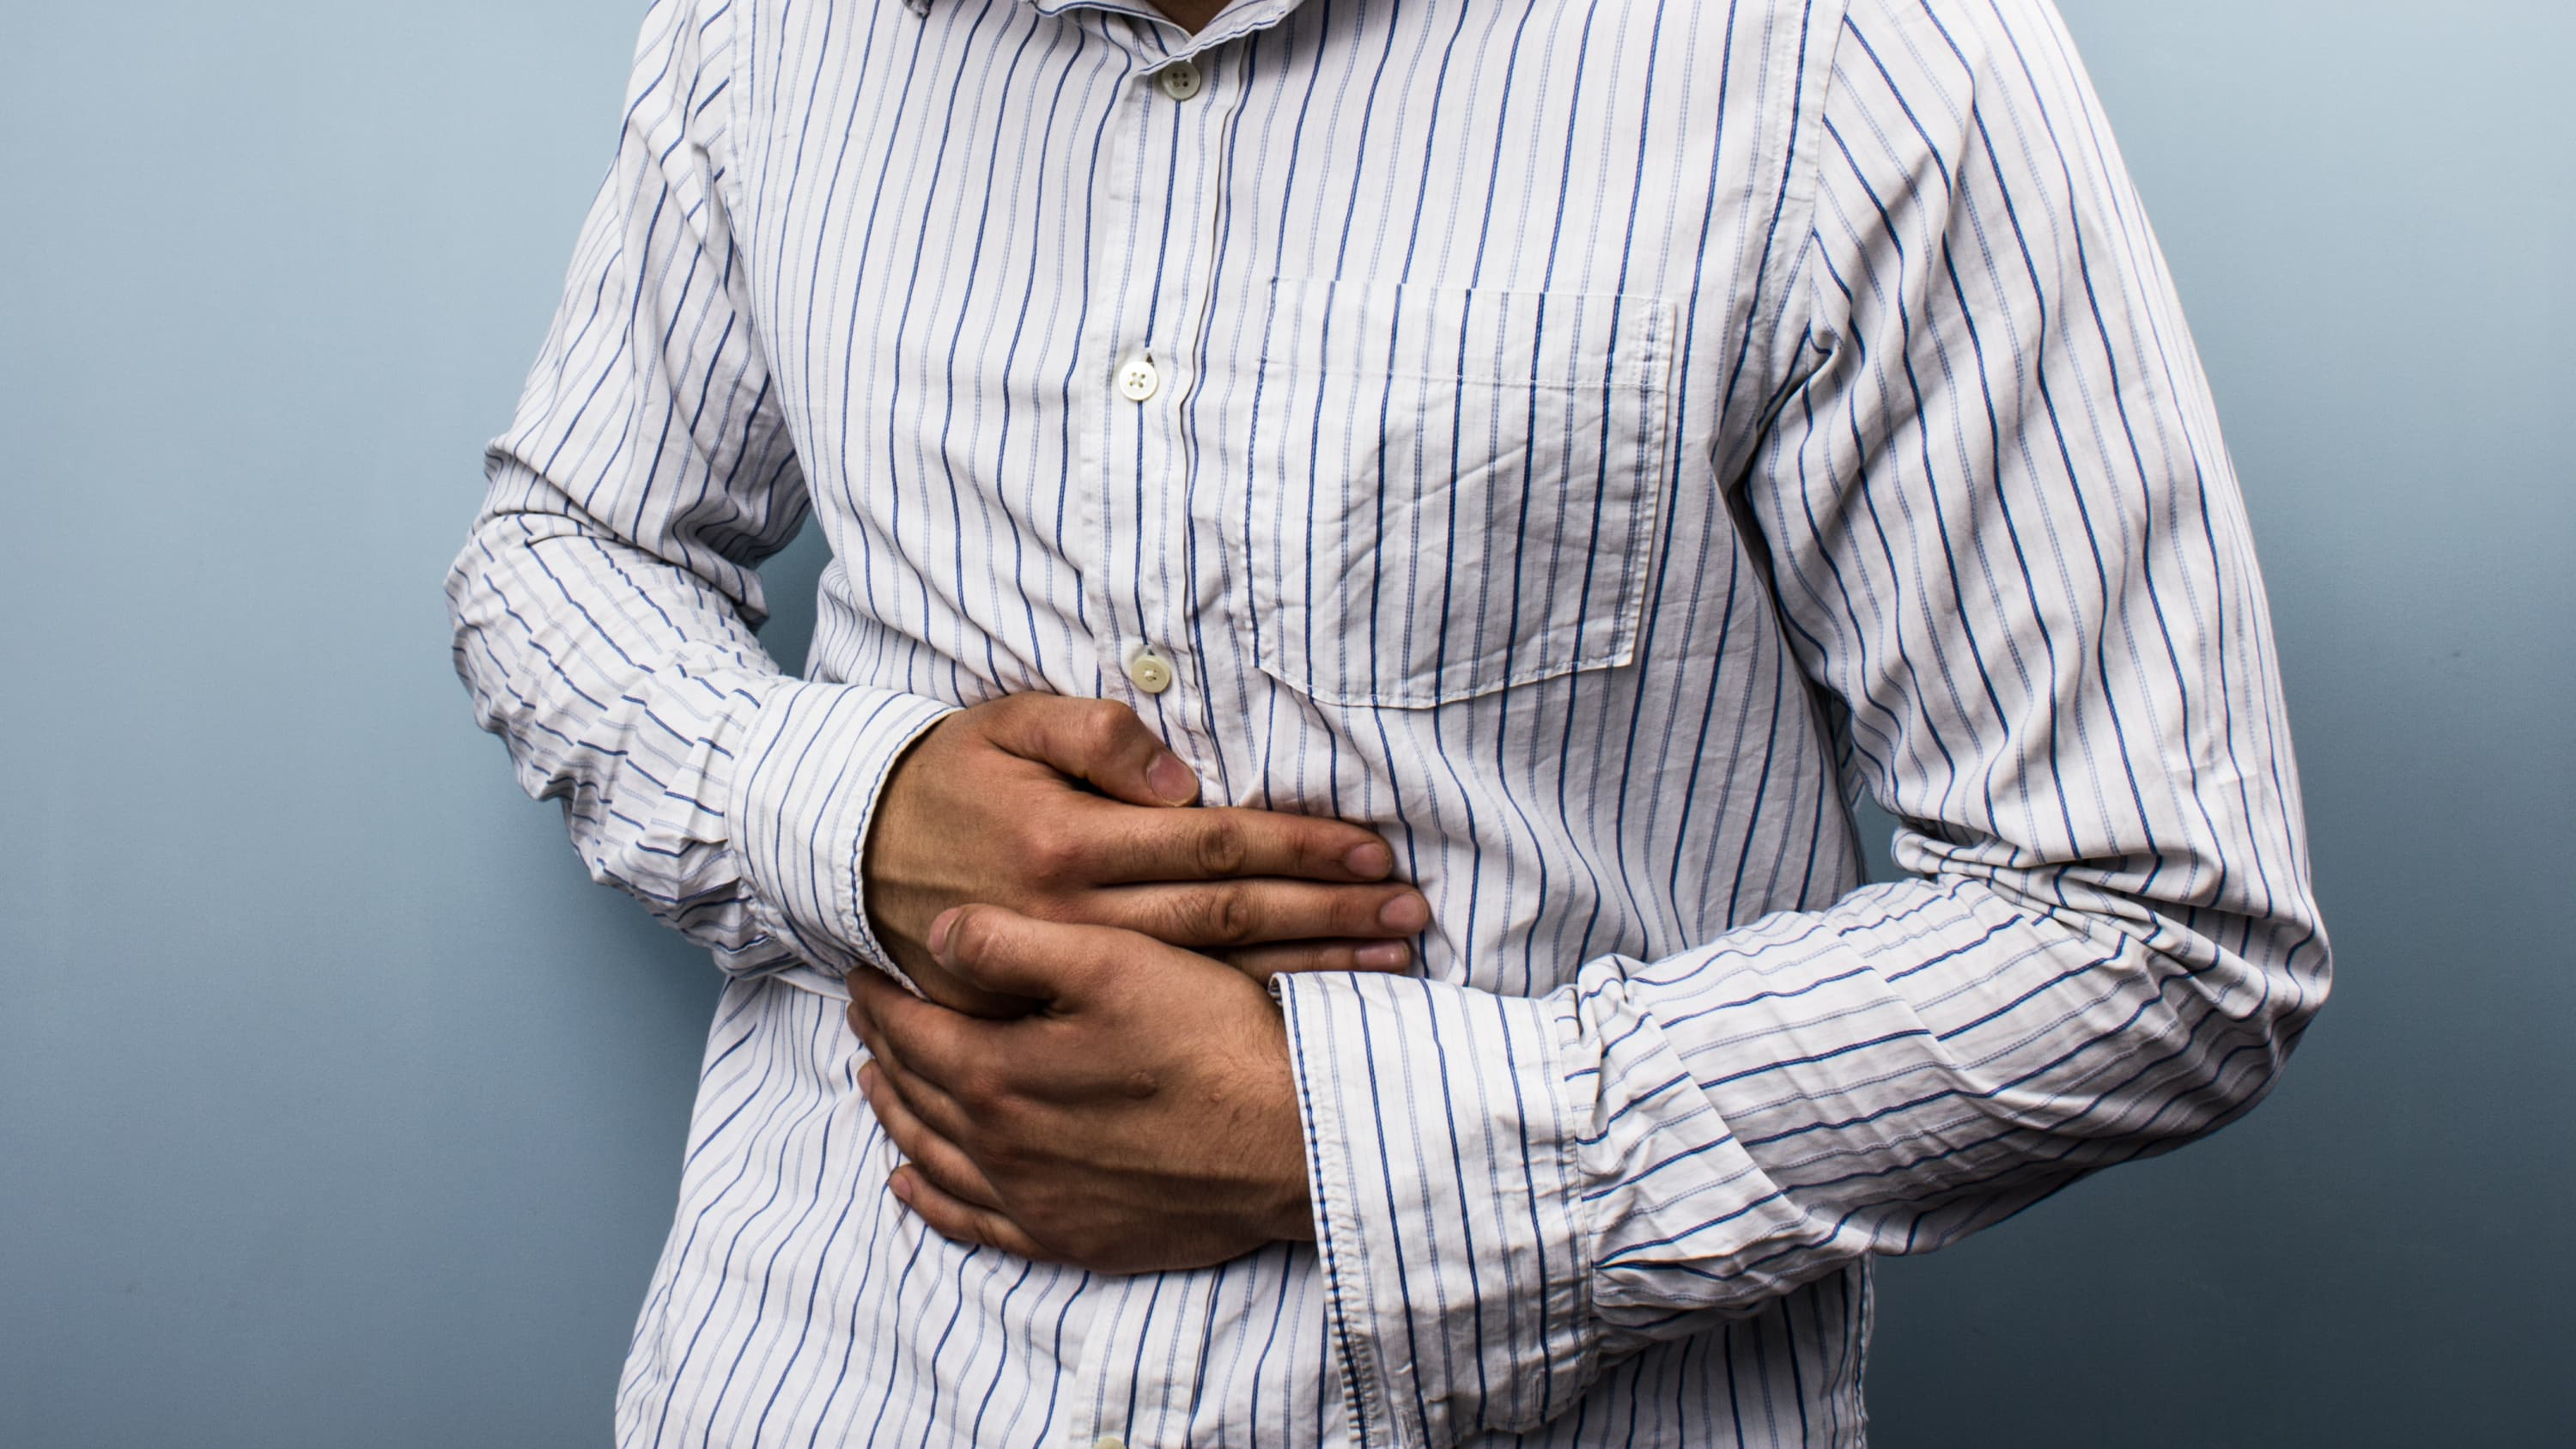 Man holds stomach in discomfort, he is suffering from ulcerative colitis.